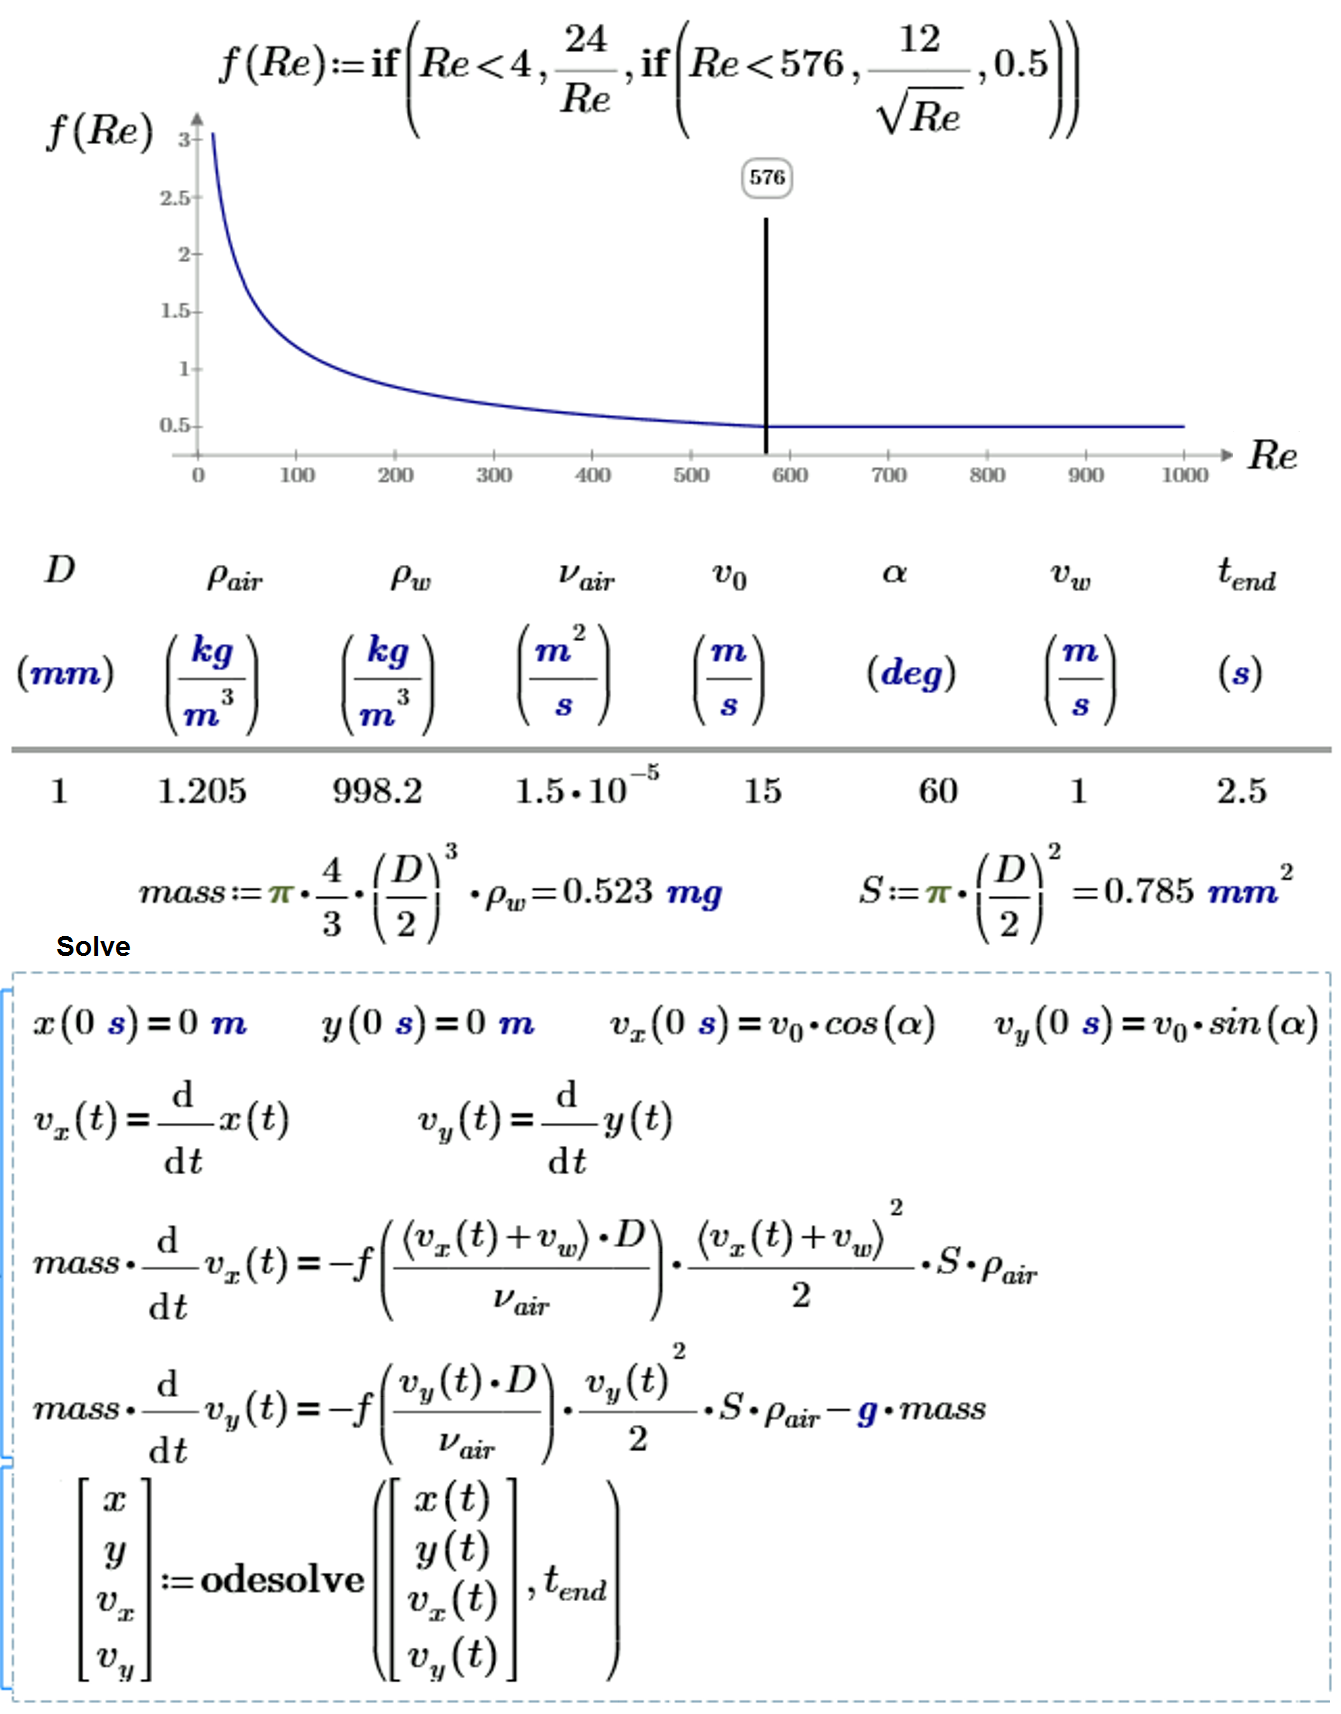 Solved: Re: differential equation solver - PTC Community